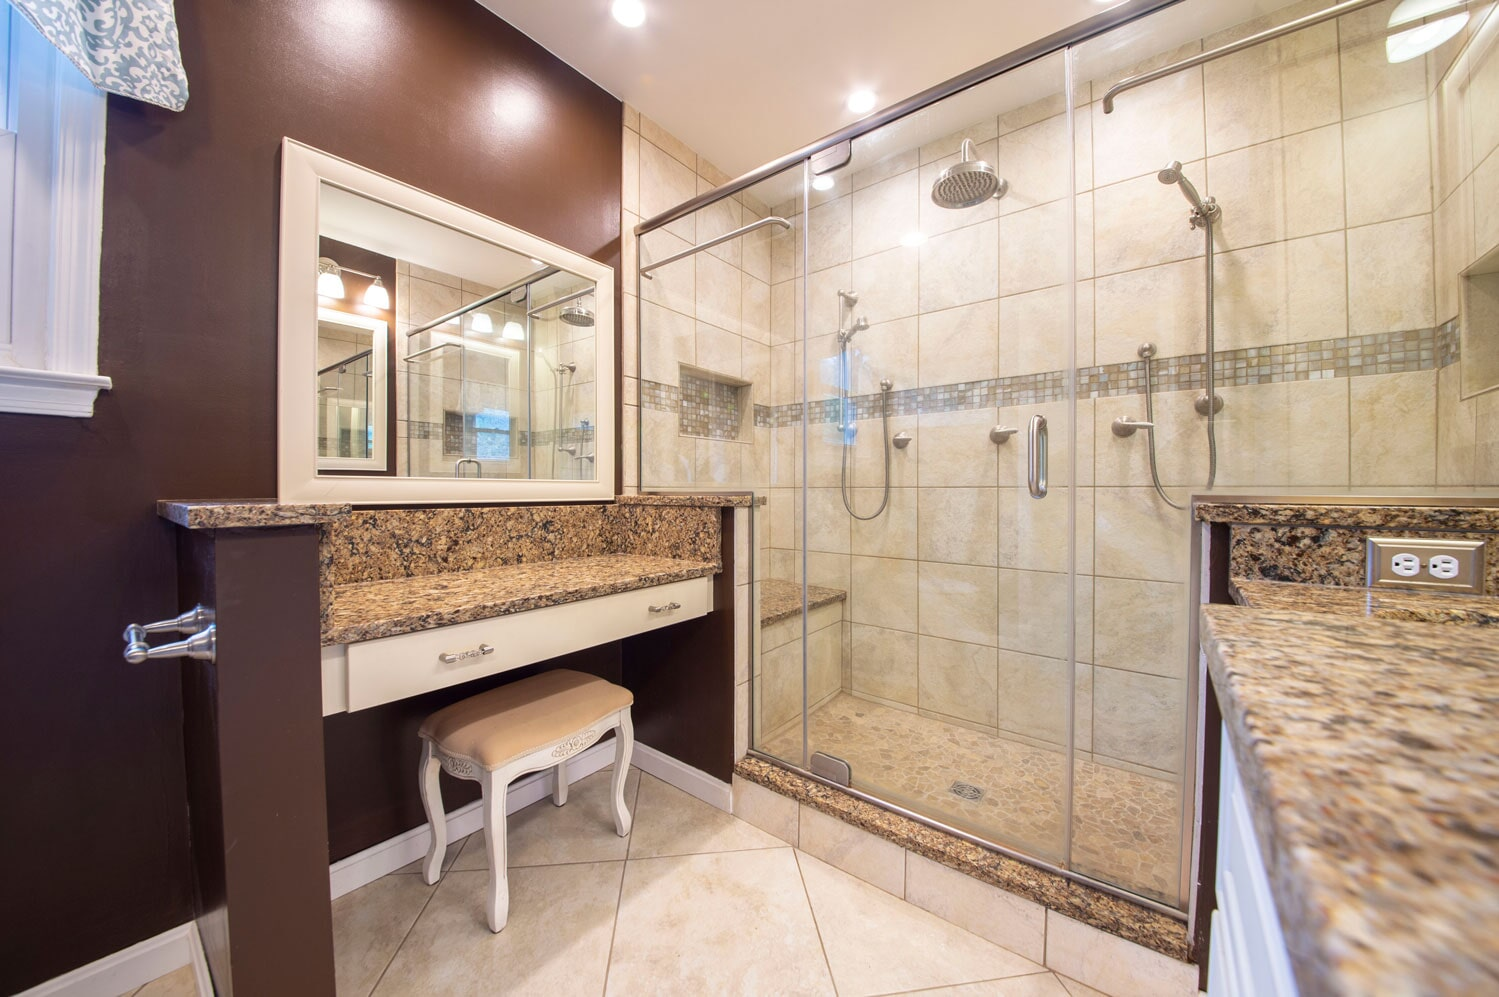 Bathroom remodeling in St. Charles, MD by Southern Maryland Kitchen, Bath, Floors & Design